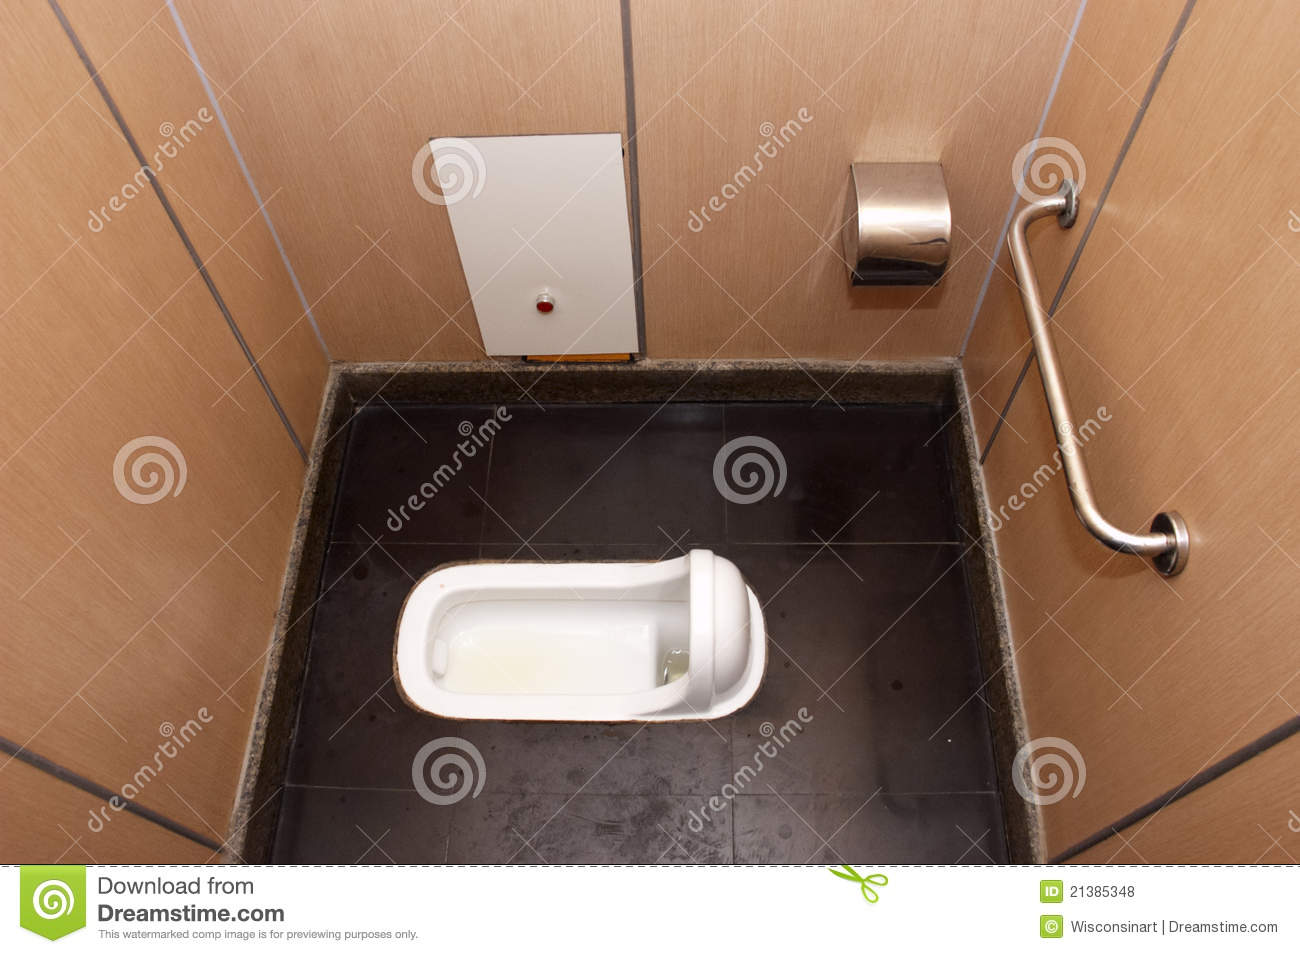 Bathroom Stalls In Other Countries squat toilet bathroom stall royalty free stock photos - image